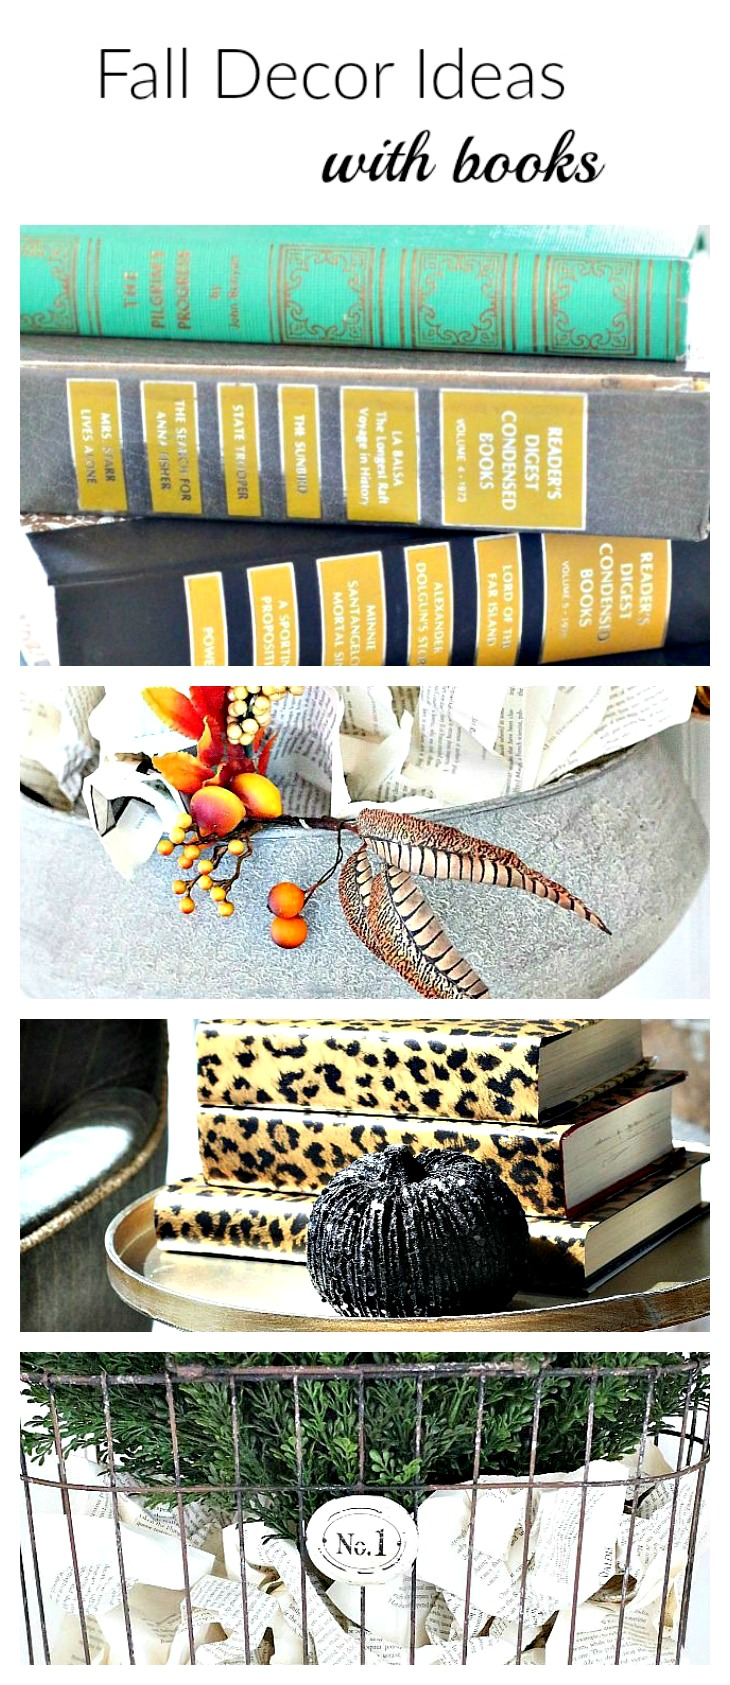 Fall decor ideas with books the house of silver lining for Home design ideas book